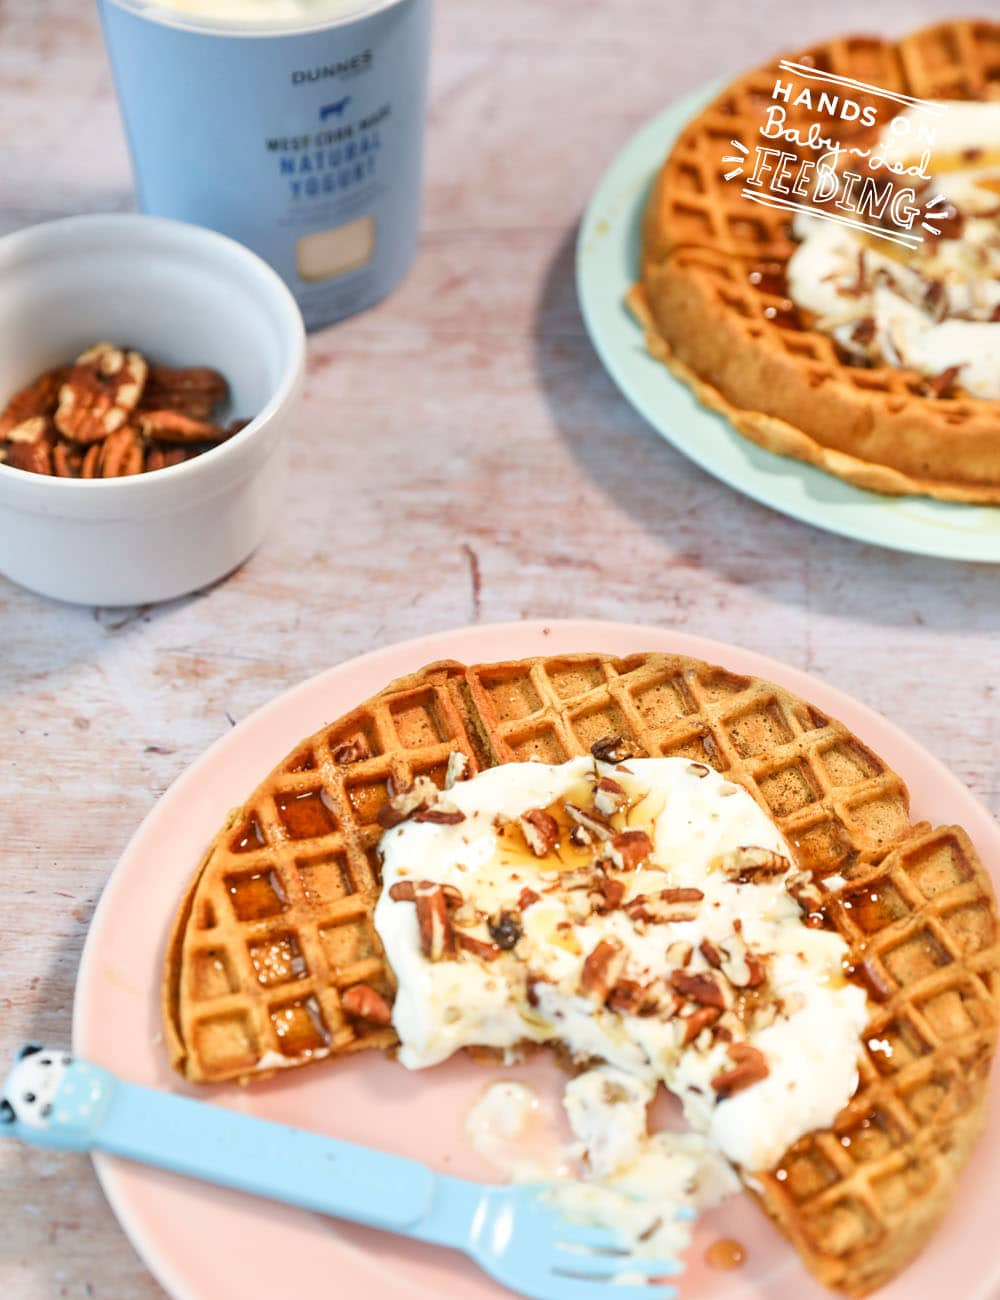 Easy and Healthy Sweet Potato Waffles with Crushed Pecans! Refined sugar free, baby led weaning friendly, family breakfast spiced with cinnamon, ginger, and ground nutmeg served with a dollop of protein rich Greek yogurt. #waffles #babyledfeeding #babyledweaning #sweetpotato #breakfast